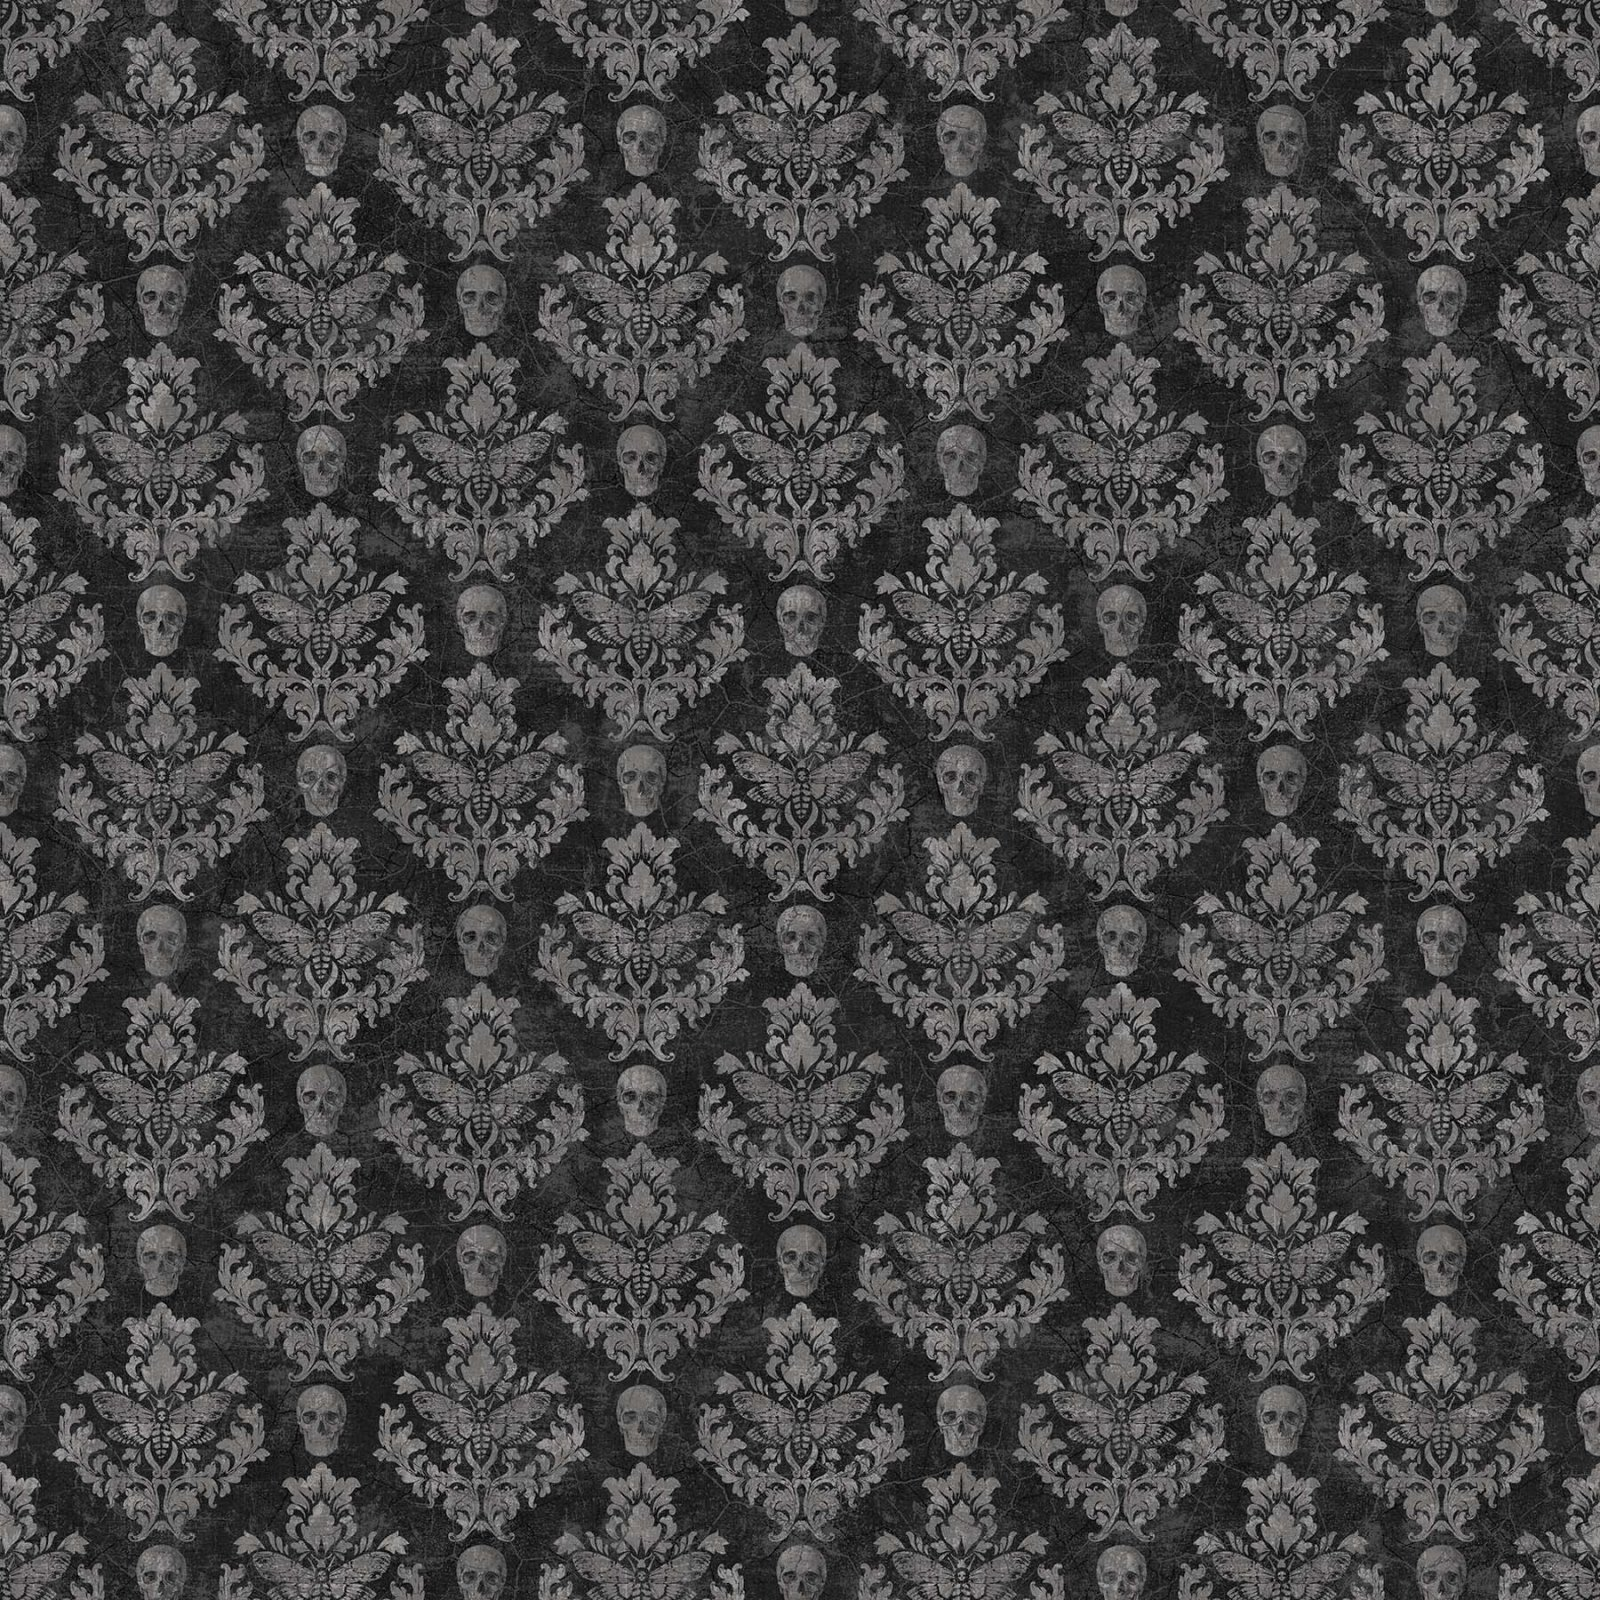 Wicked Black Damask 23444-99